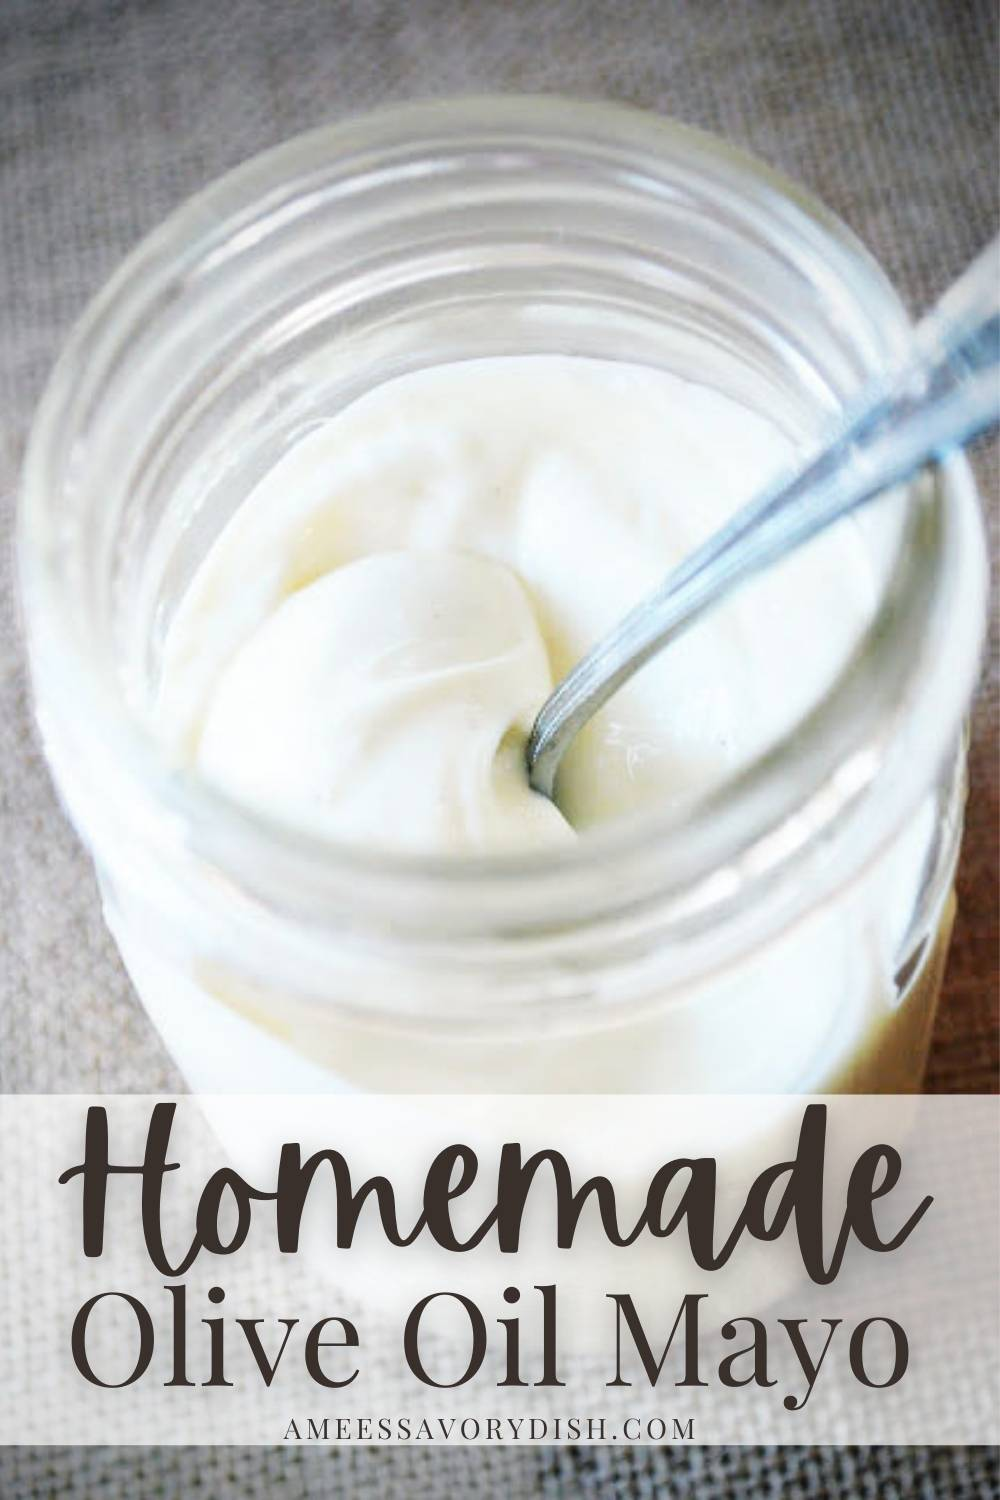 A simple recipe for homemade olive oil mayonnaise made with extra light olive oil, egg, ground mustard, and lemon juice in the food processor.#homemademayonnaise #paleomayo #homemademayo #oliveoilmayo #paleorecipe via @Ameessavorydish